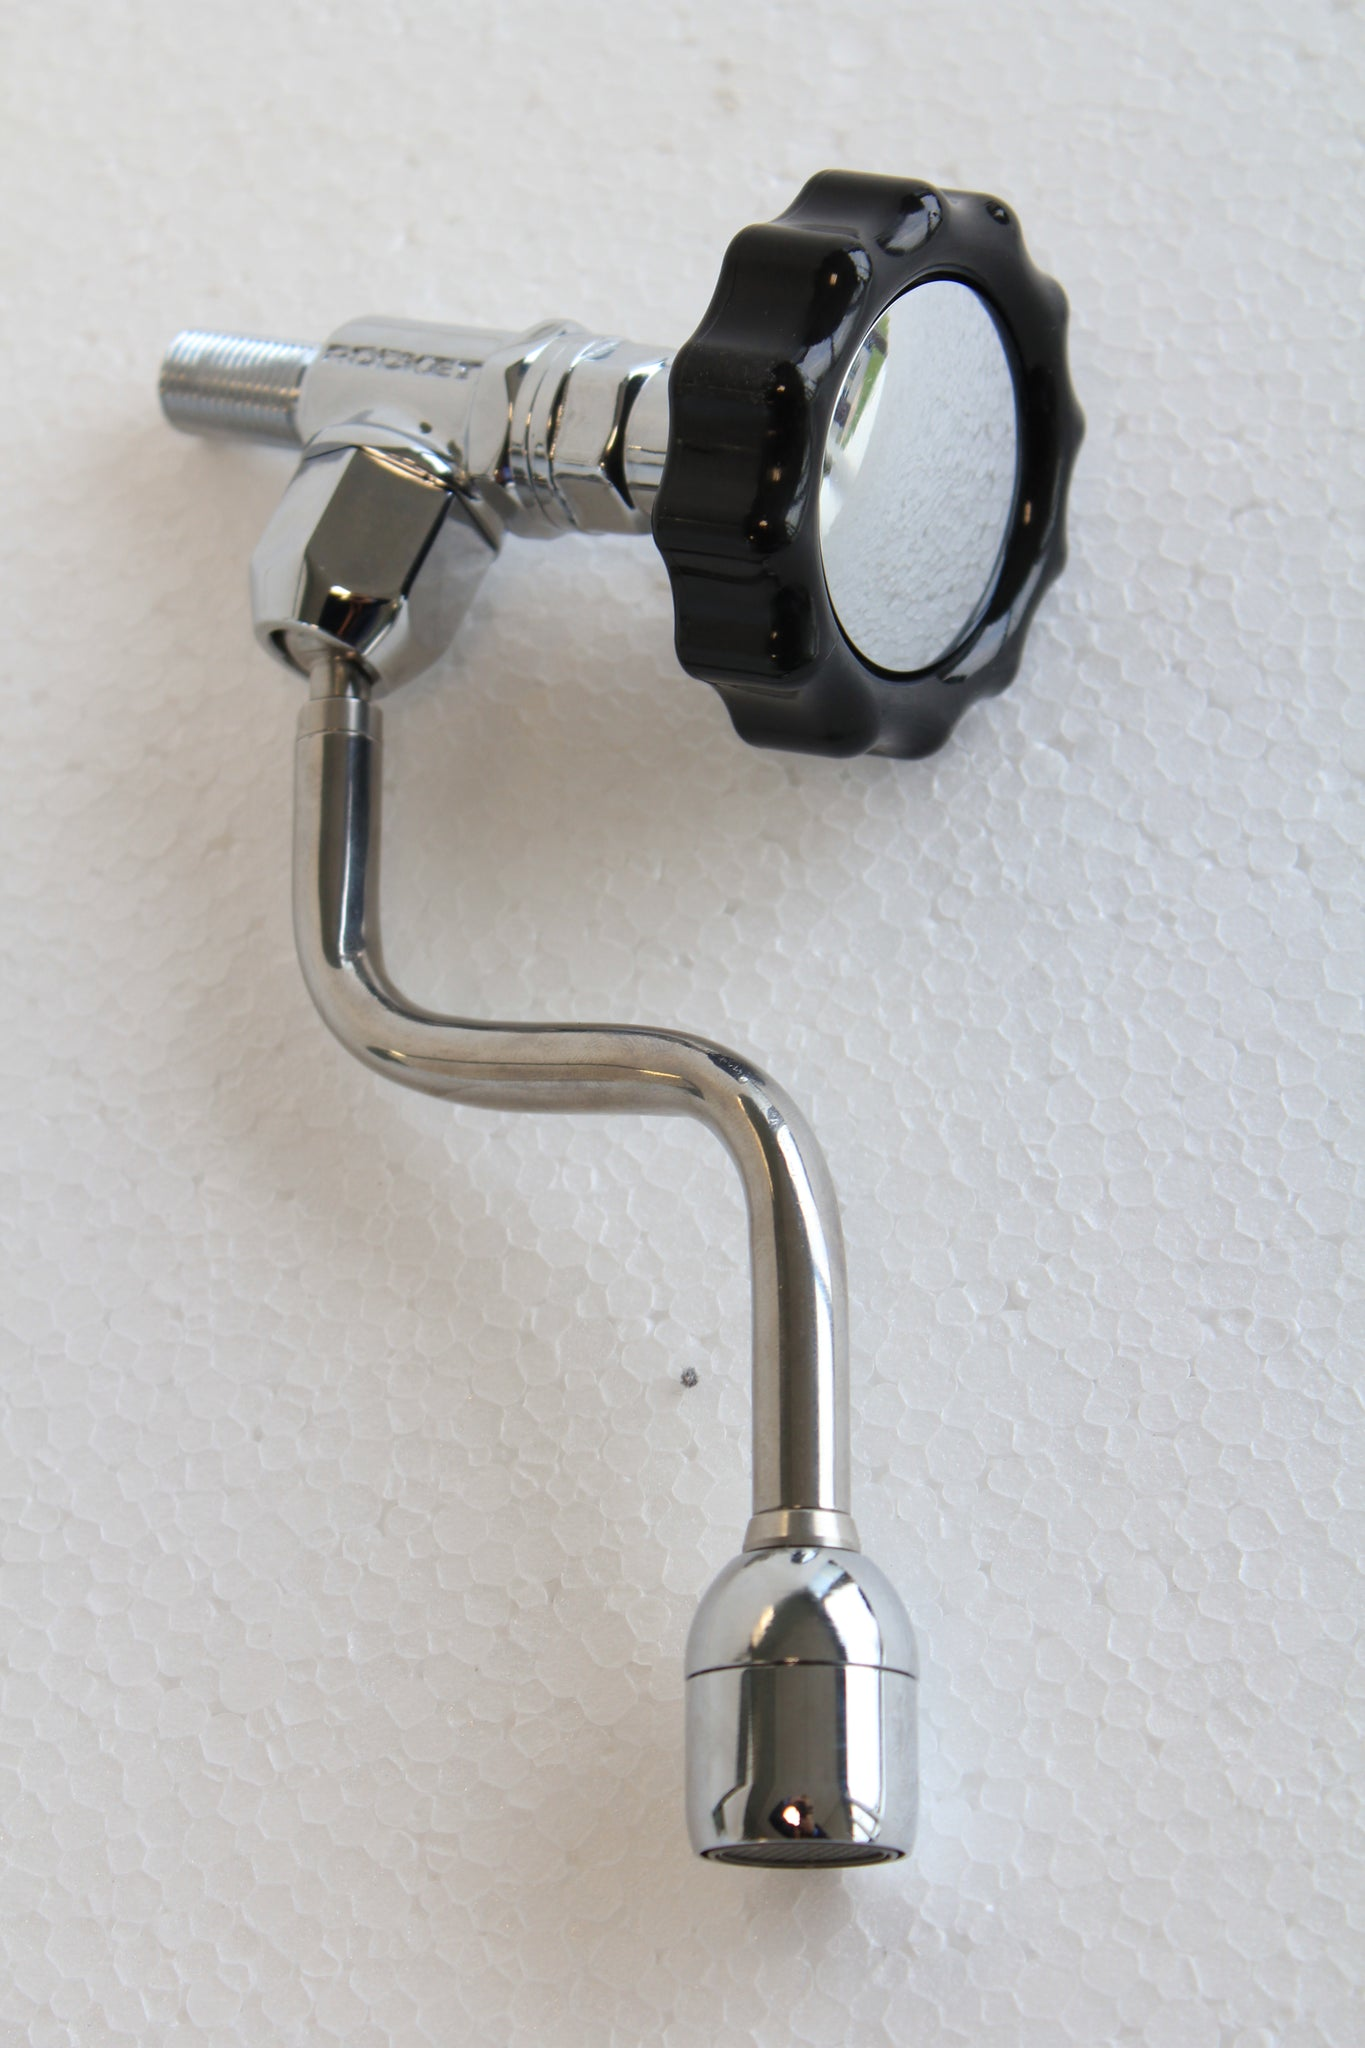 Hot Water Tap / Appartamento, Giotto type V and R , Mozzafiato Type V and R